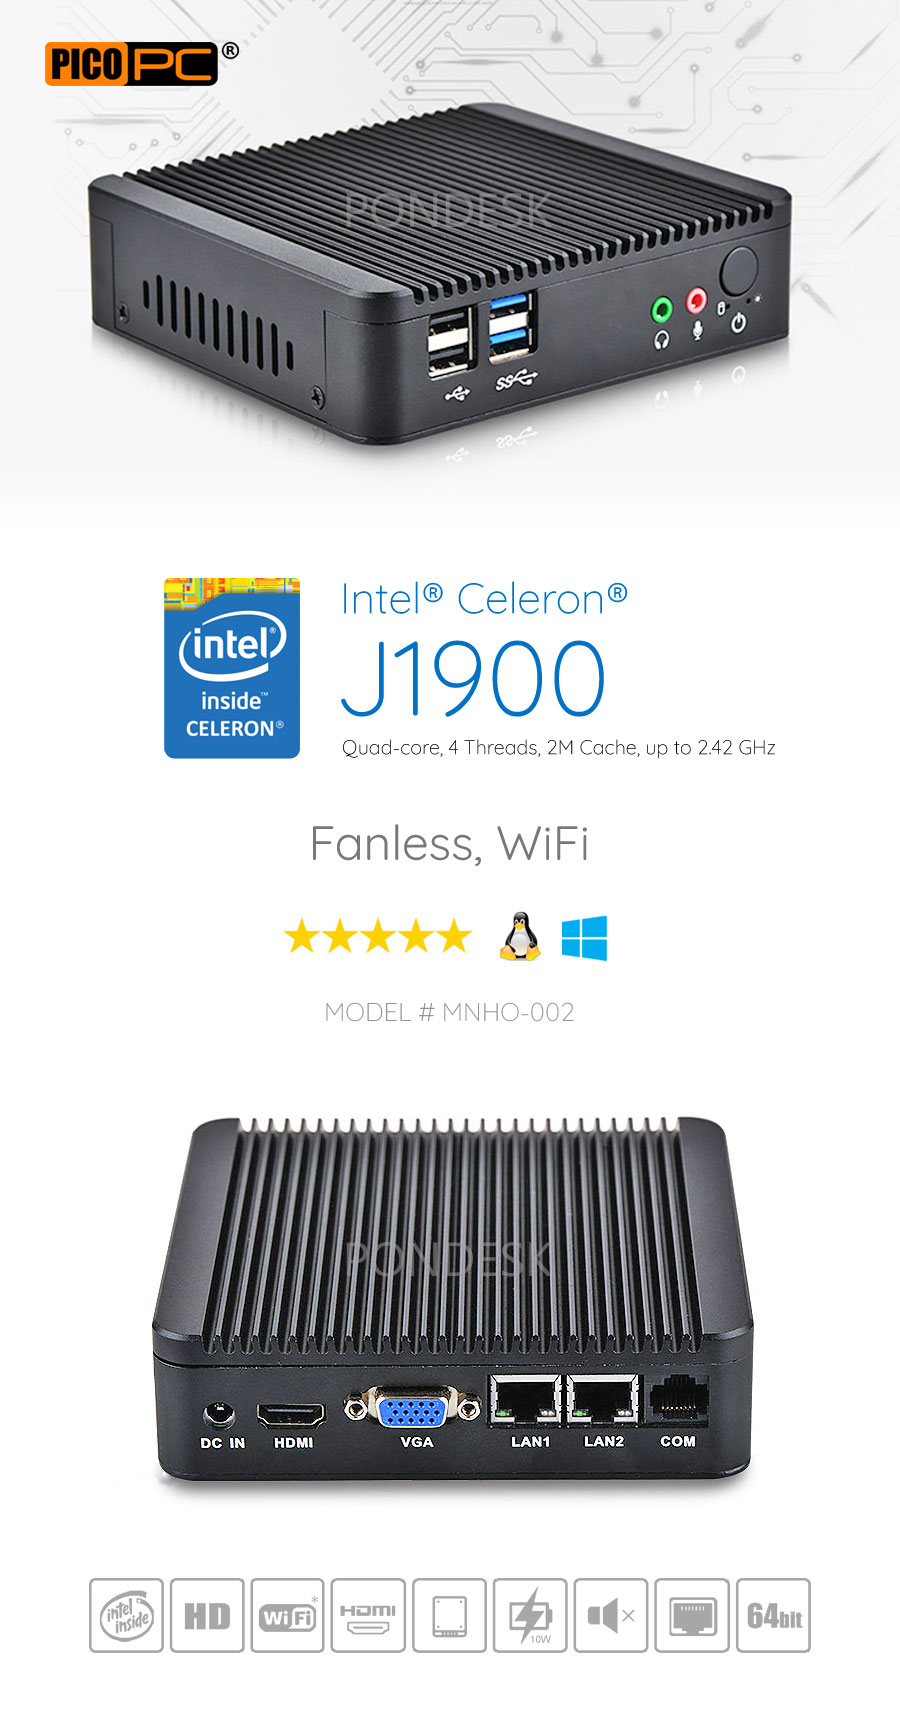 Intel® J1900 2 LAN 1 COM HD Dual Display Fanless Mini PC - MNHO-002 | Image